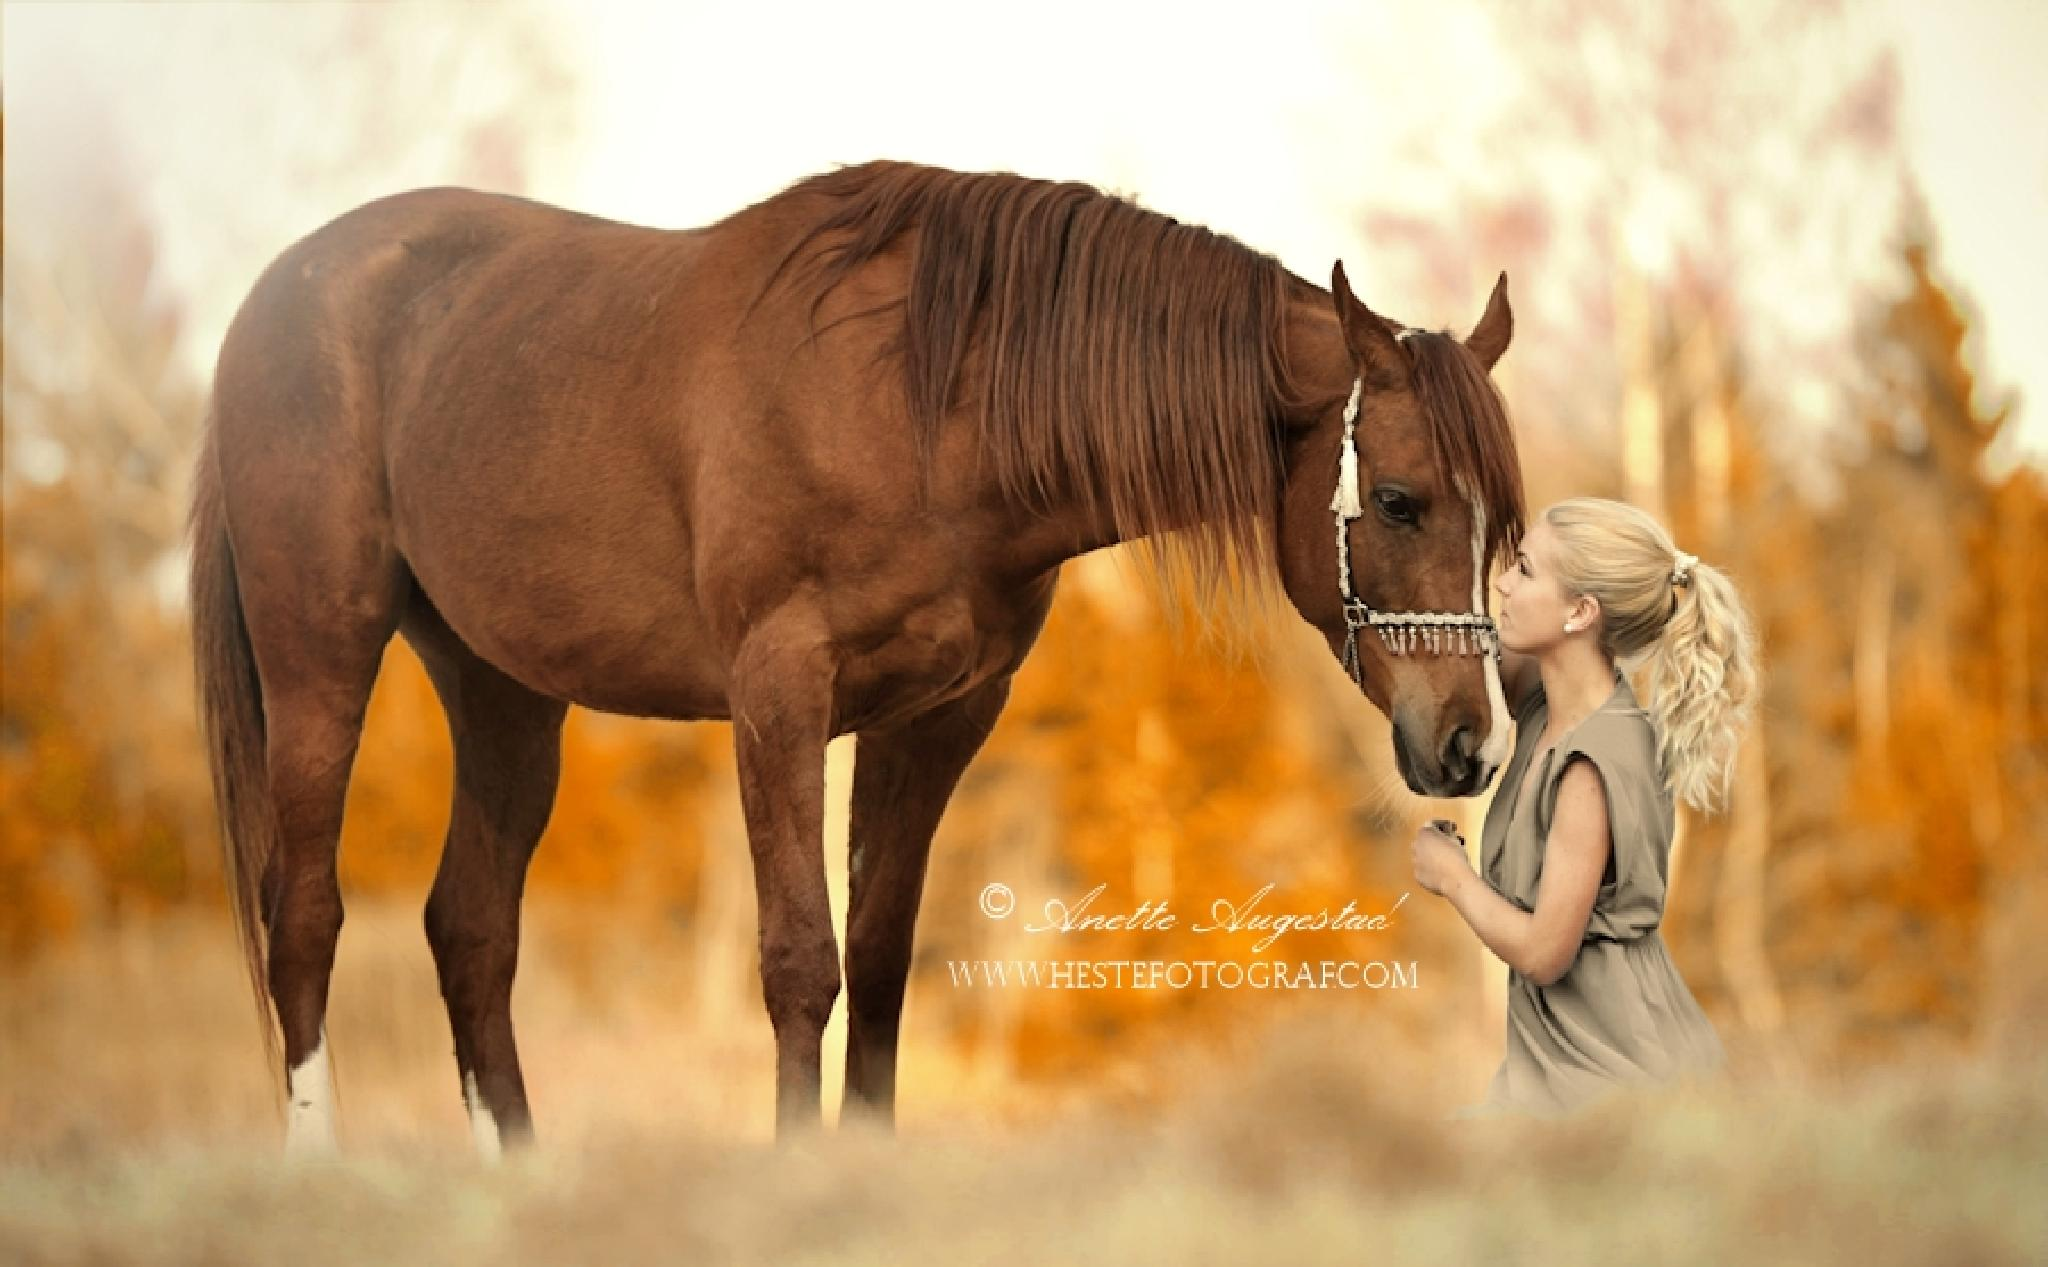 Promise In Autumn by Hestefotograf